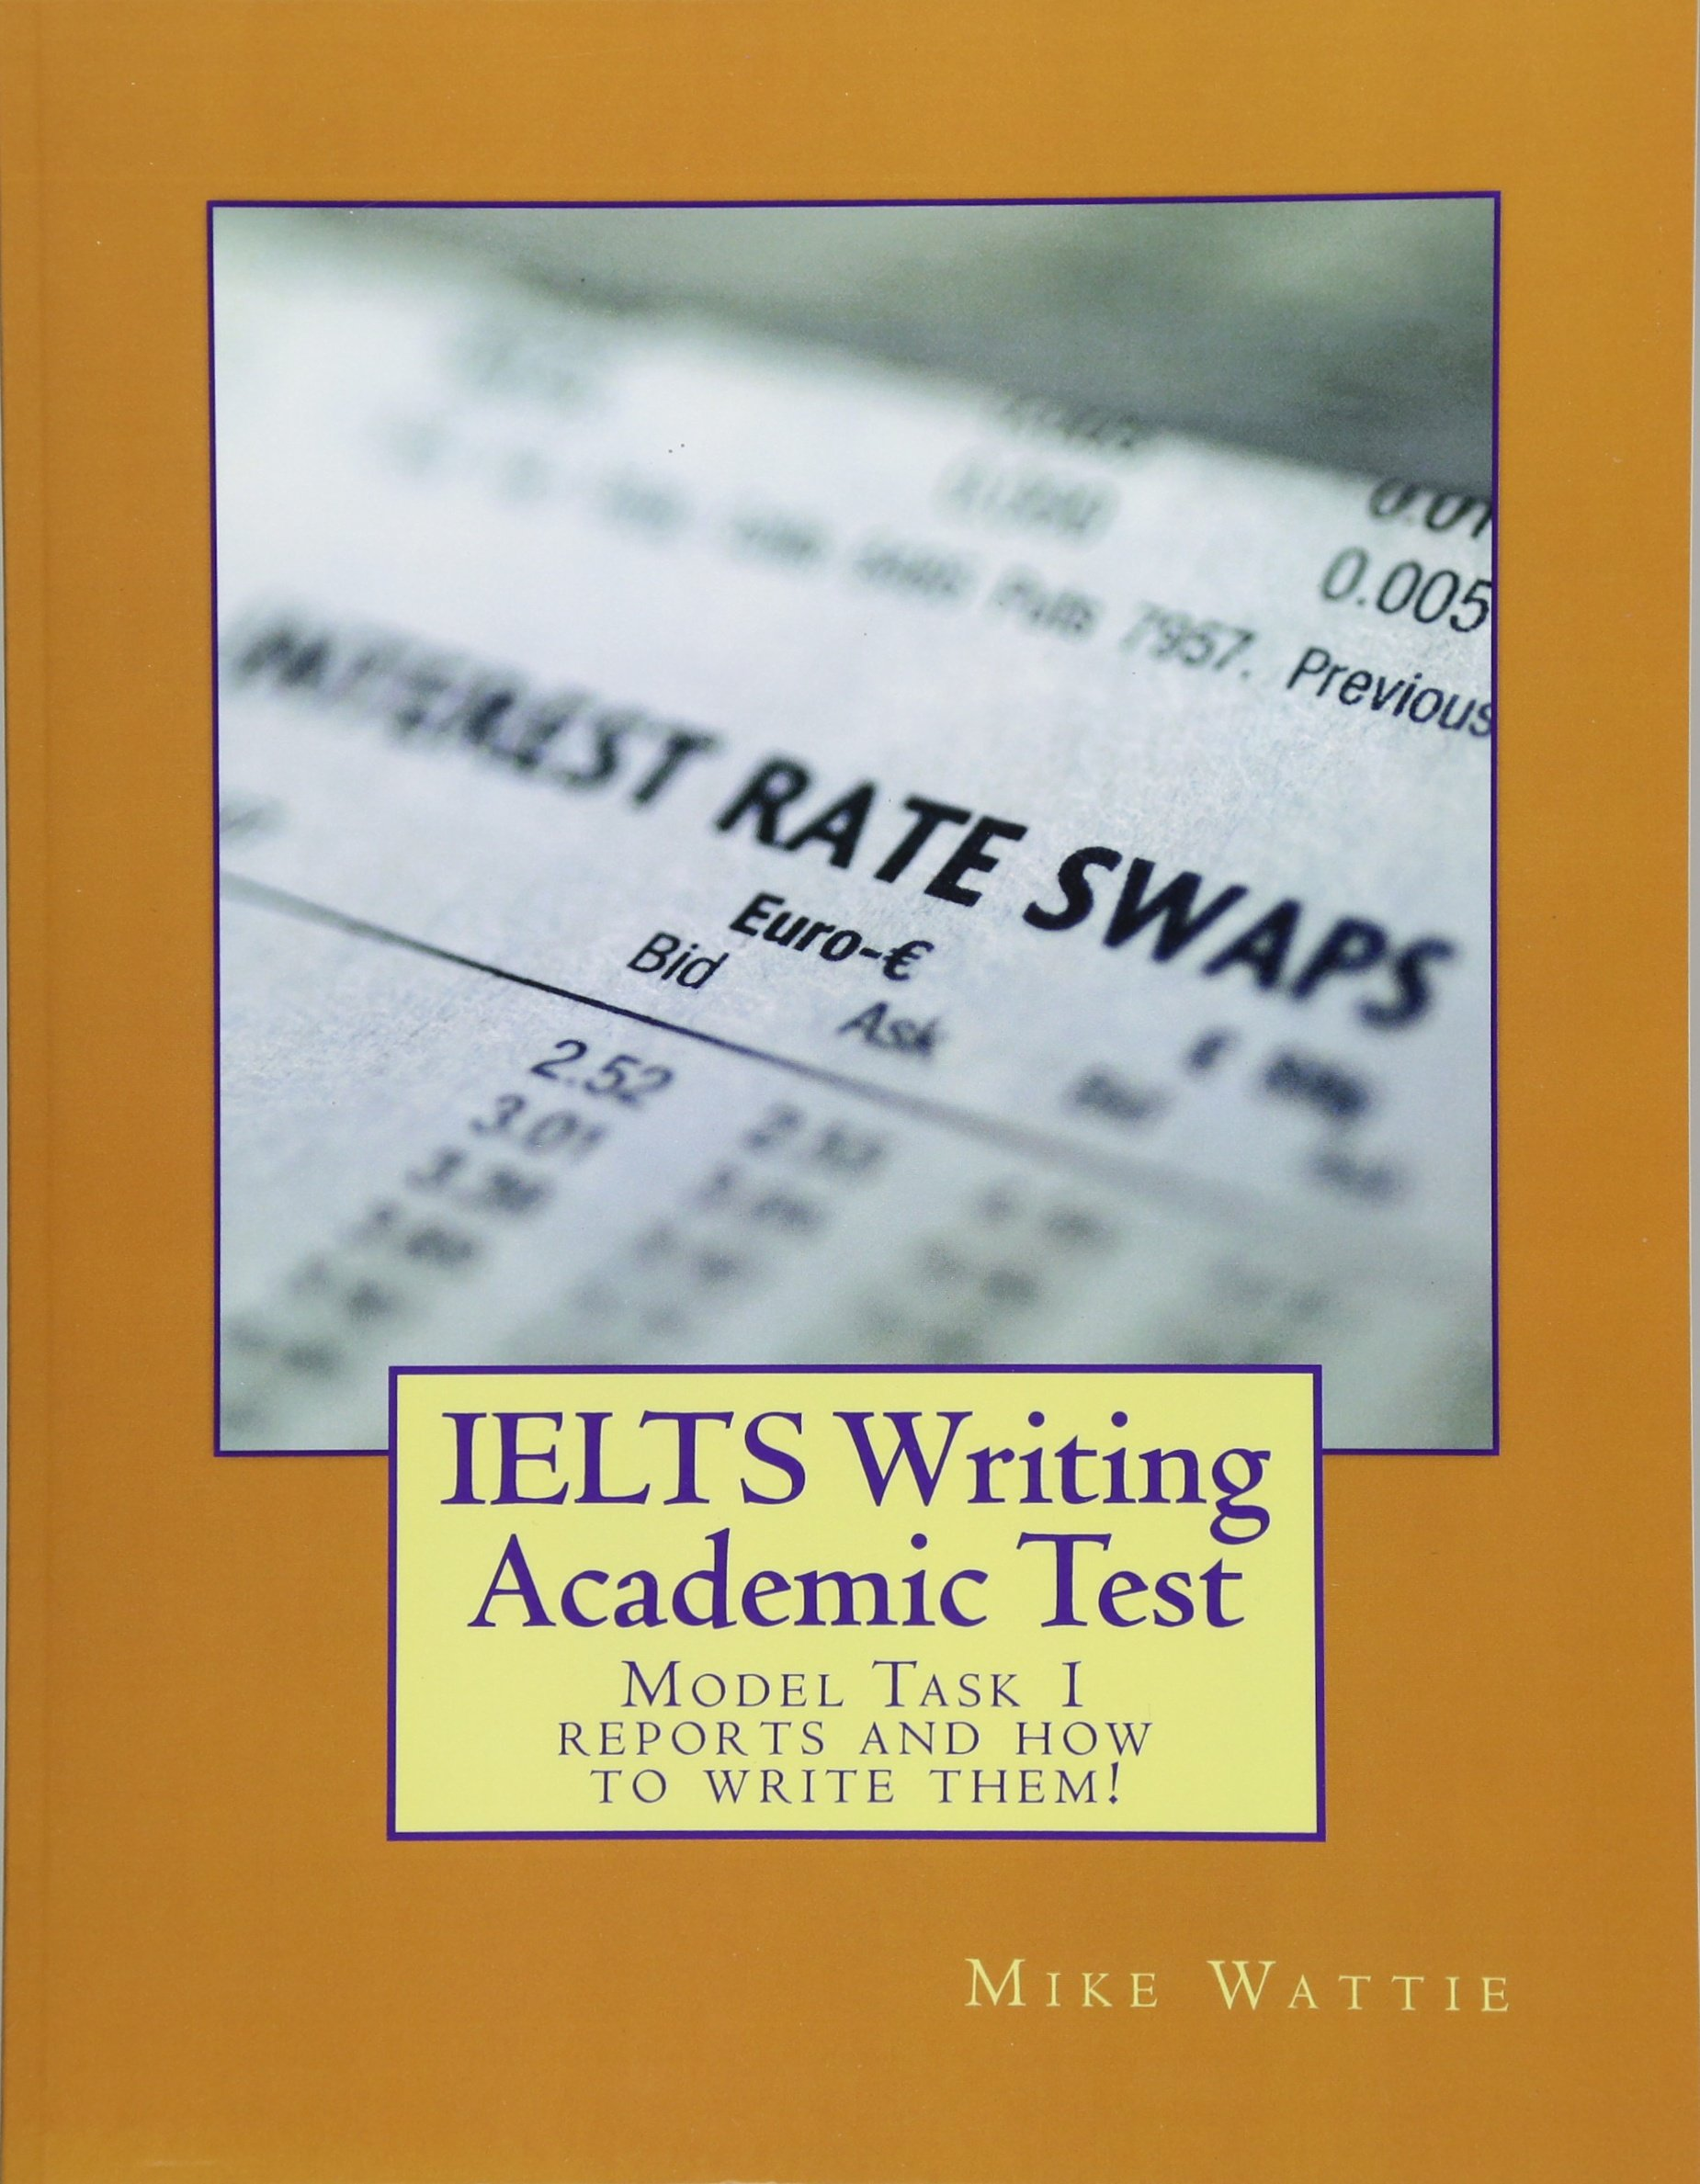 Buy Ielts Writing Academic Test: Model Task 1 Reports and